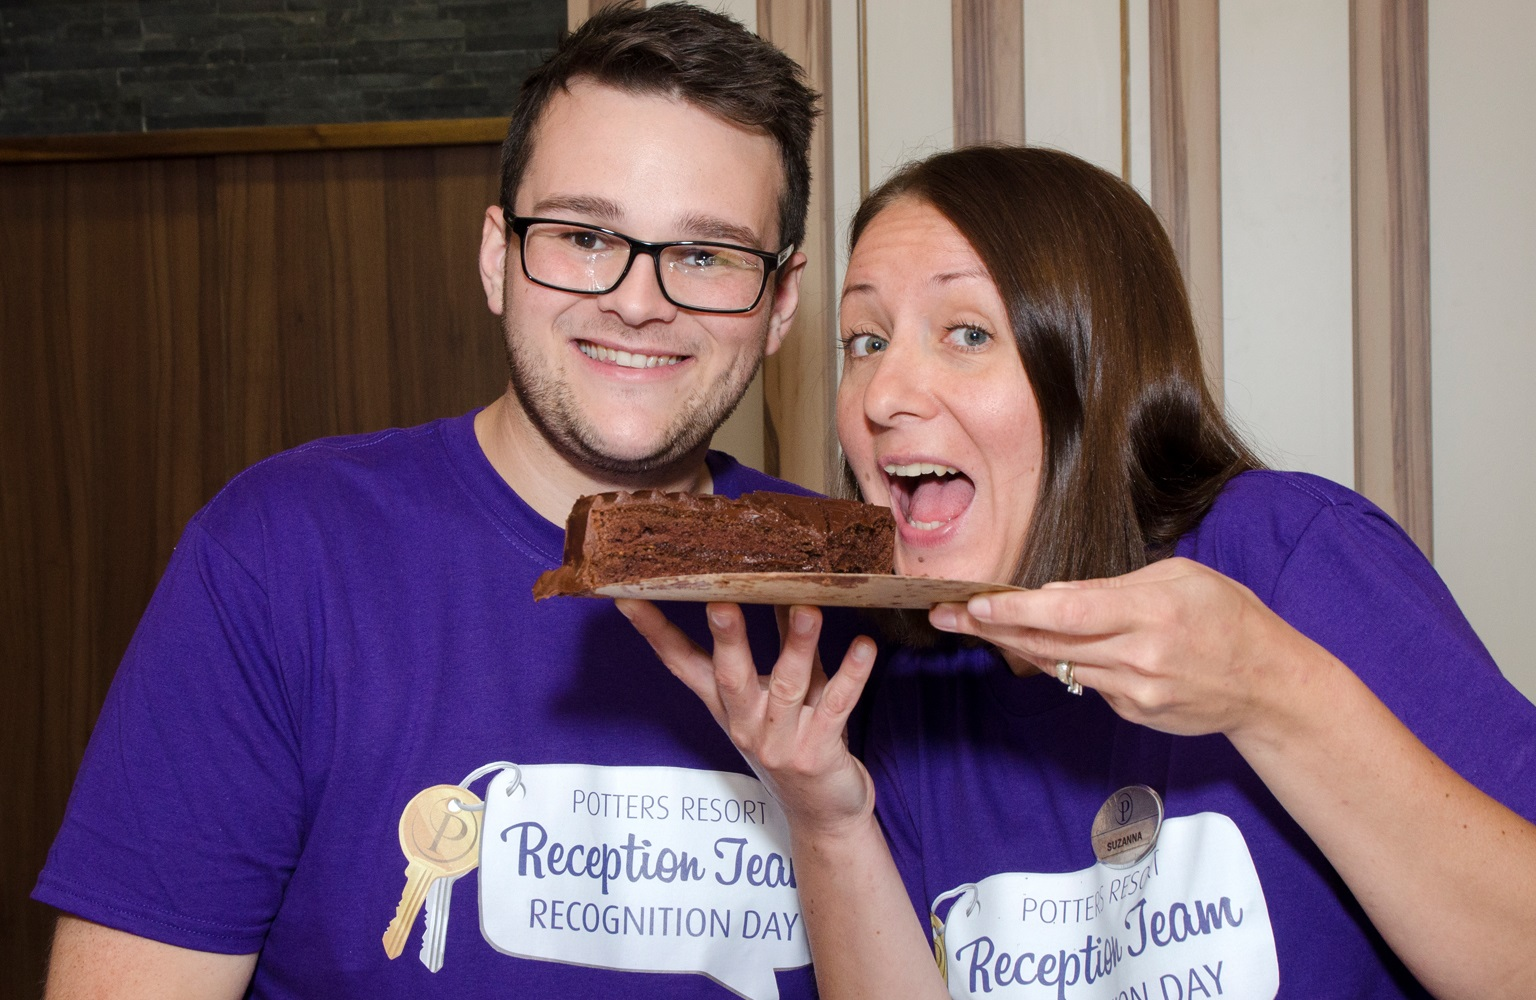 Cakes, Zumba and a 13.5 metre Giant Swing to celebrate Reception Team Recognition Day